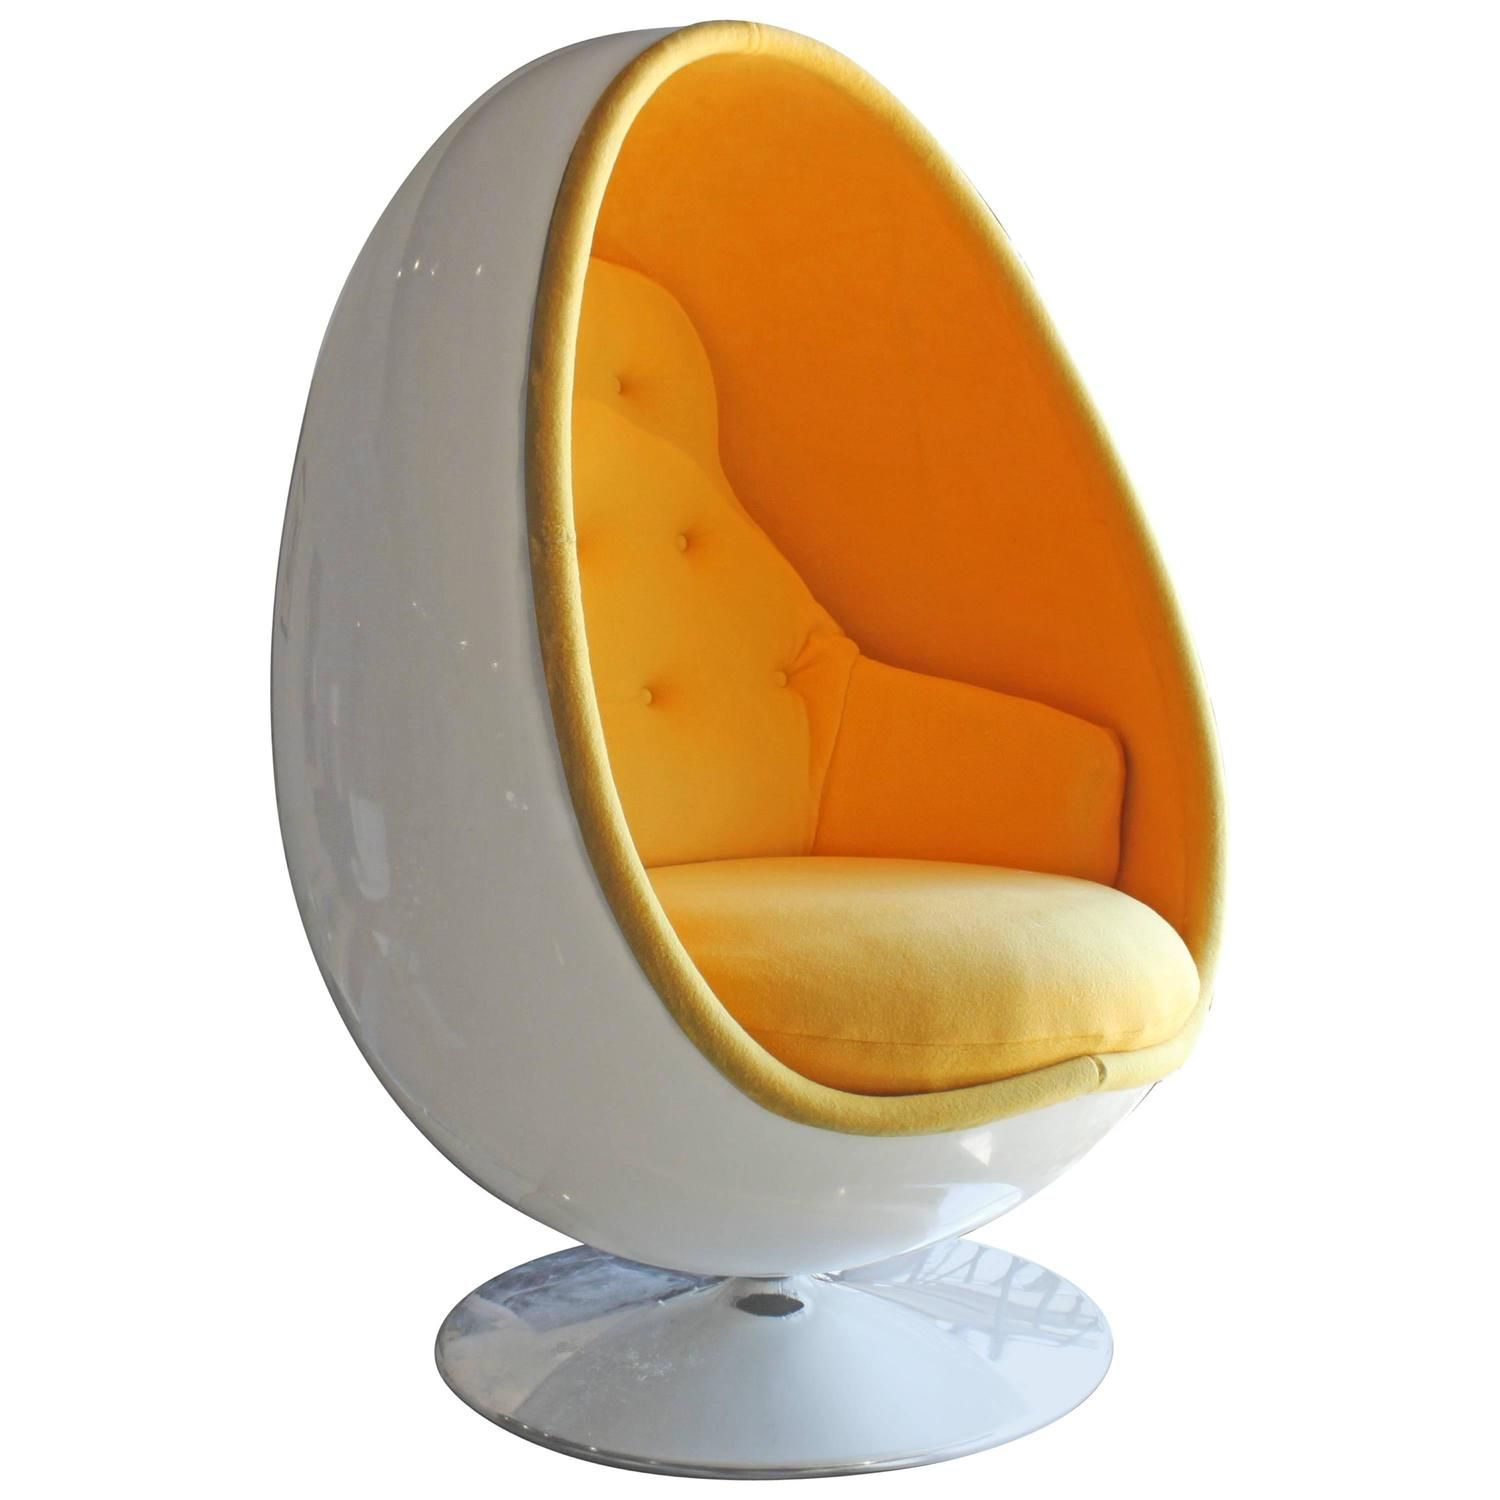 Egg Chairs For Sale Wicker Adirondack Chair Ovalia By Thor Larsen At 1stdibs Merry Wives